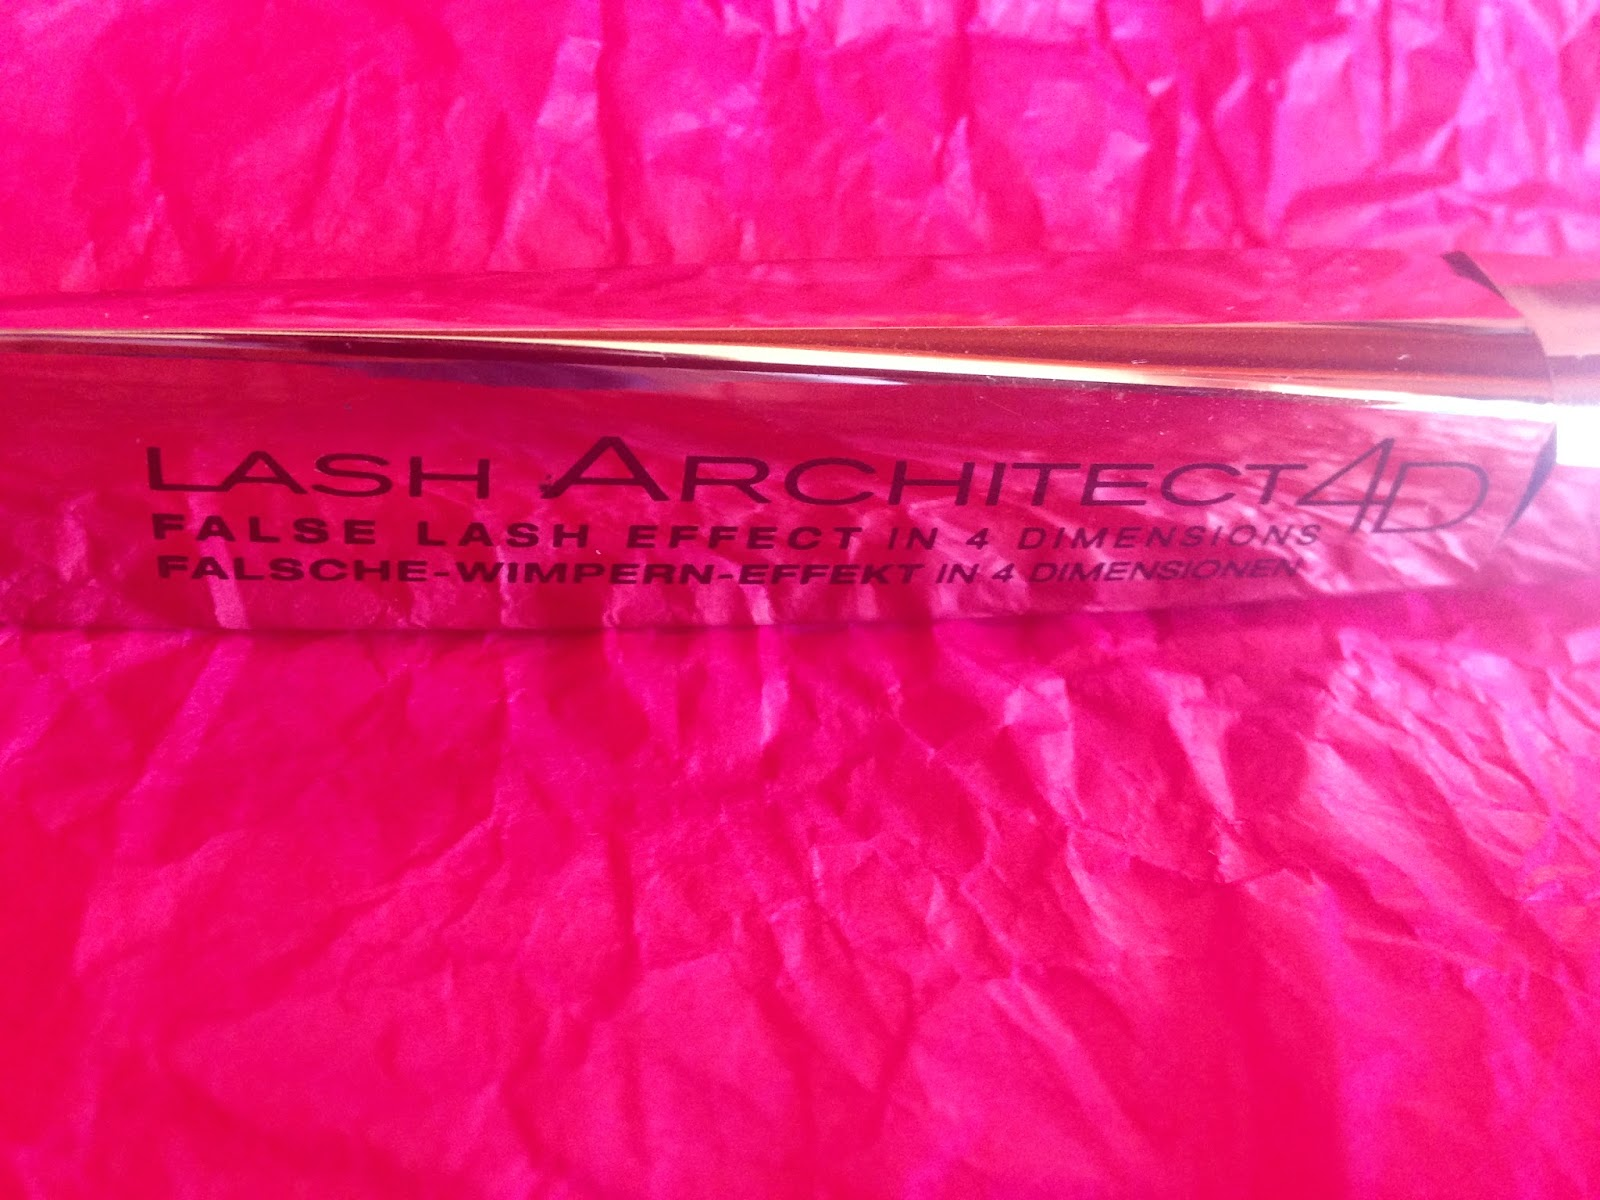 L'Oreal Lash Architect 4D mascara packaging - www.modenmakeup.com